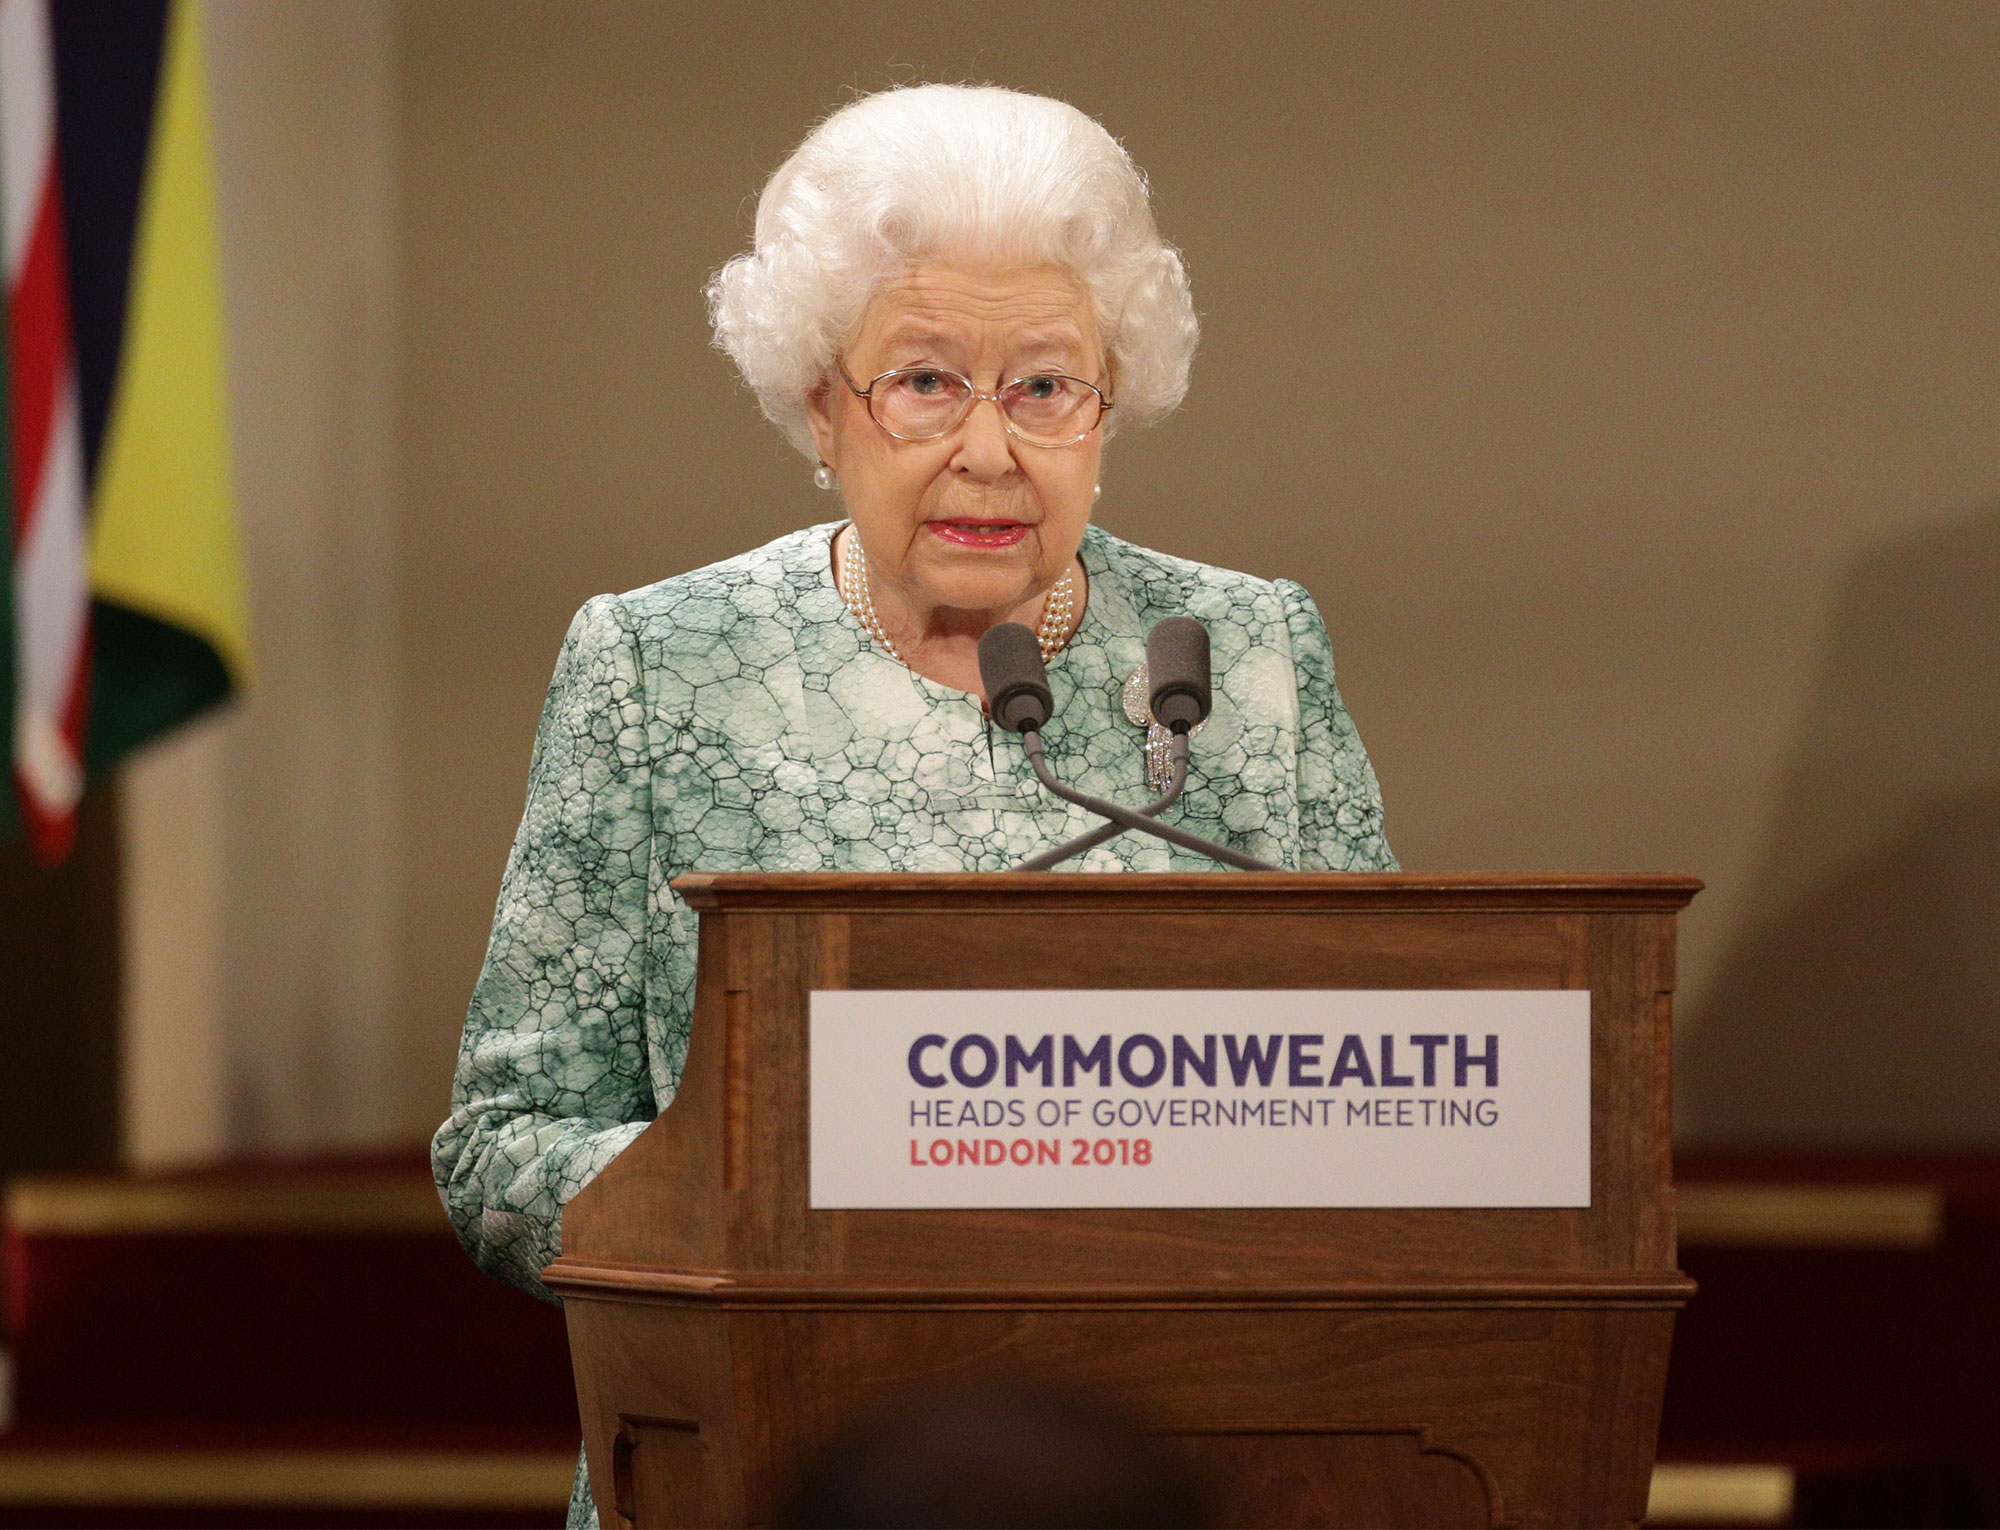 Commonwealth Heads of Government Meeting, London, UK - 19 Apr 2018